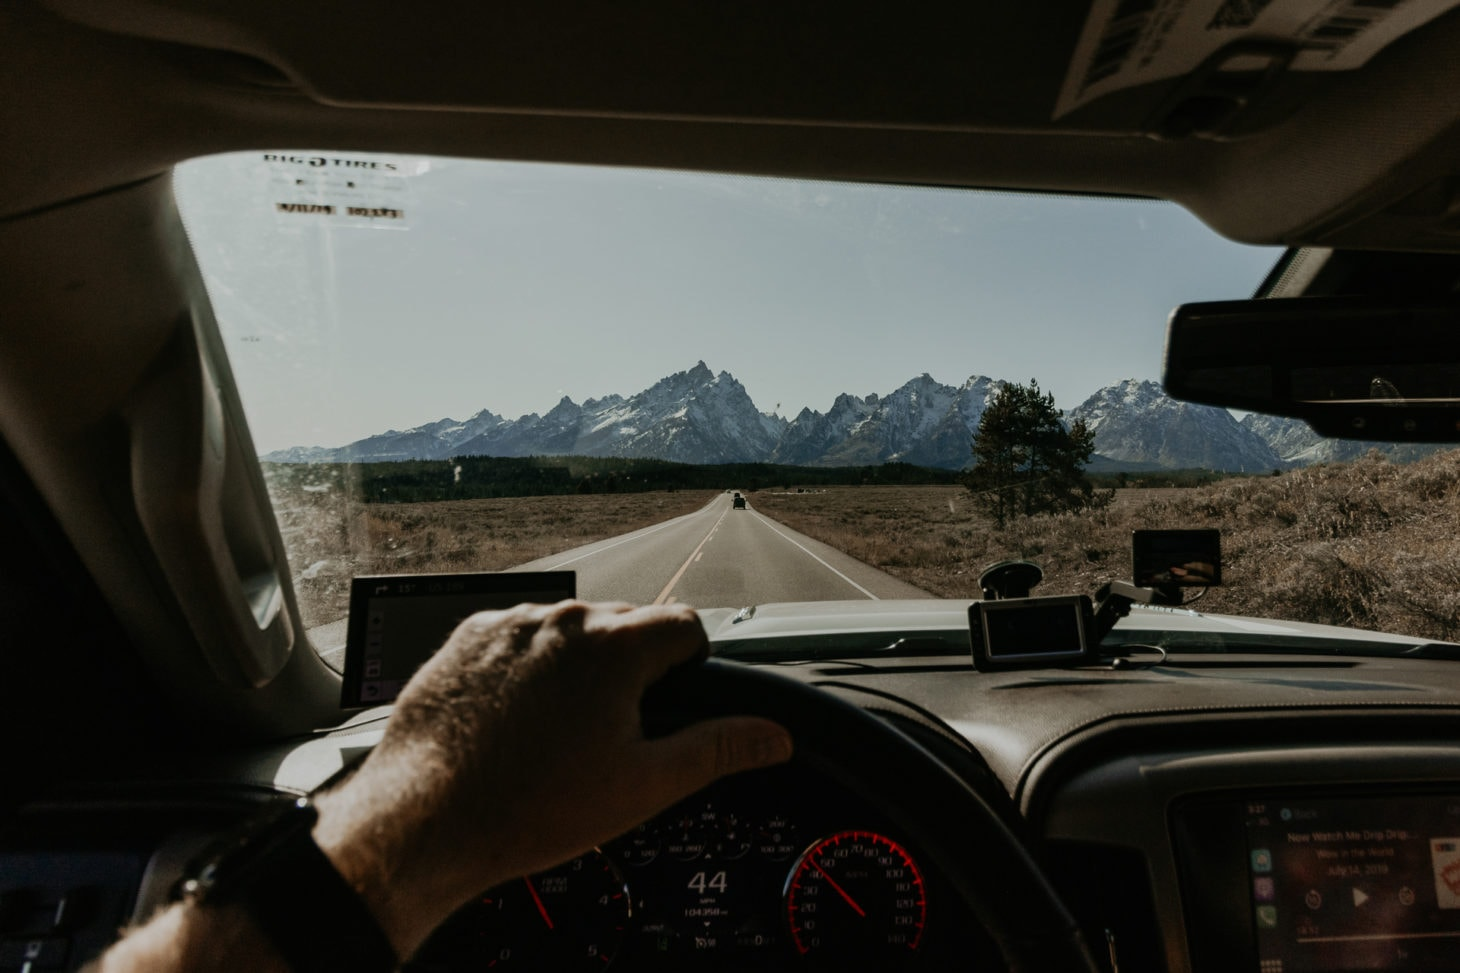 View from the dashboard of a car heading to mountain range